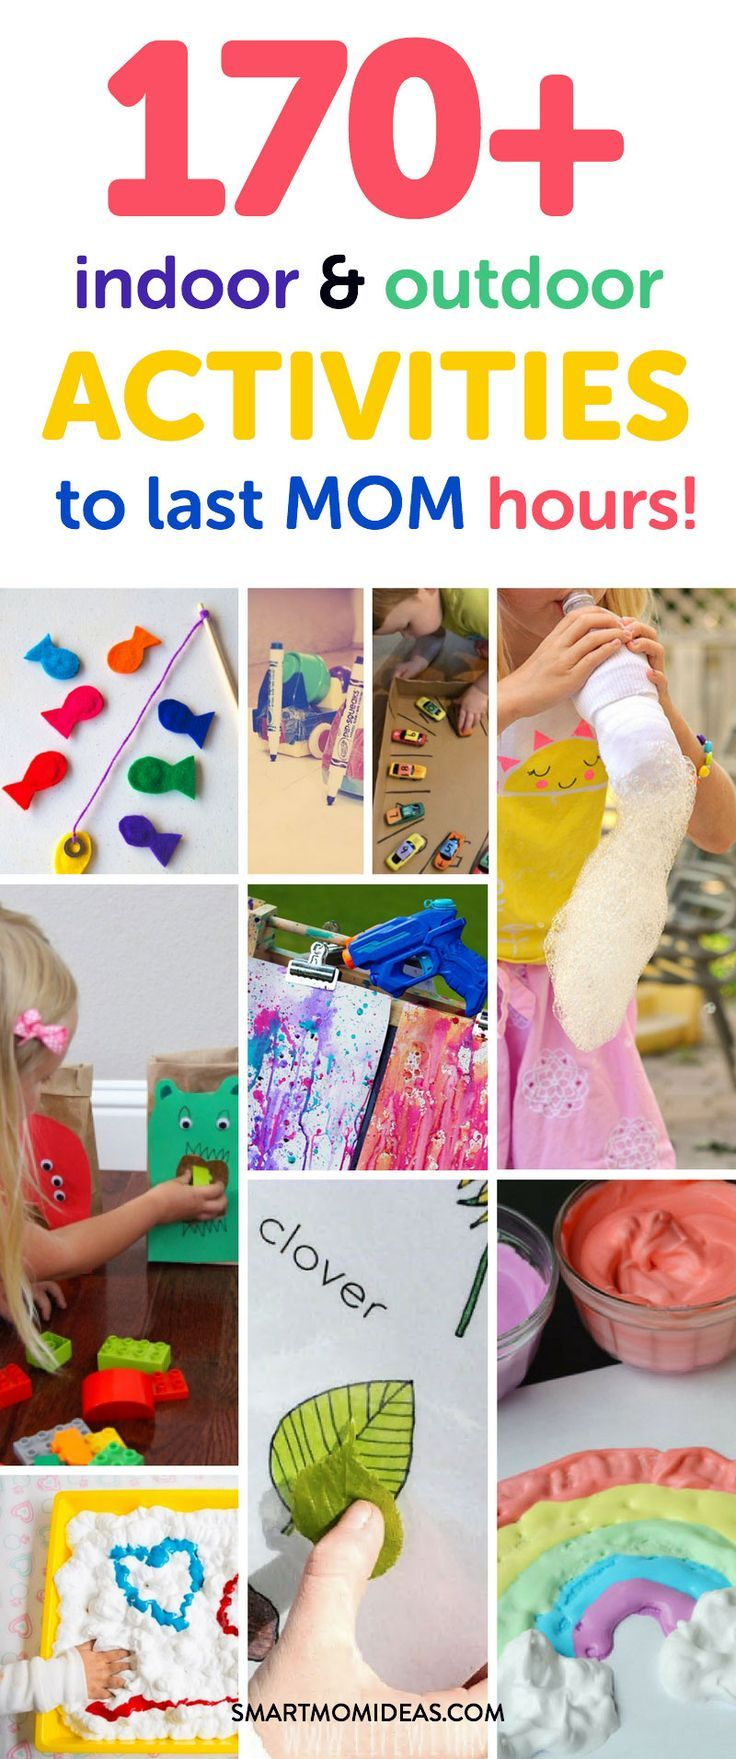 Need some summer toddler activities? Or how about mess-free toddler activities? Whether you are indoors or outdoors, check out this epic list of over 170+ indoor and outdoor toddler activities to last mom hours of free time! Yay!